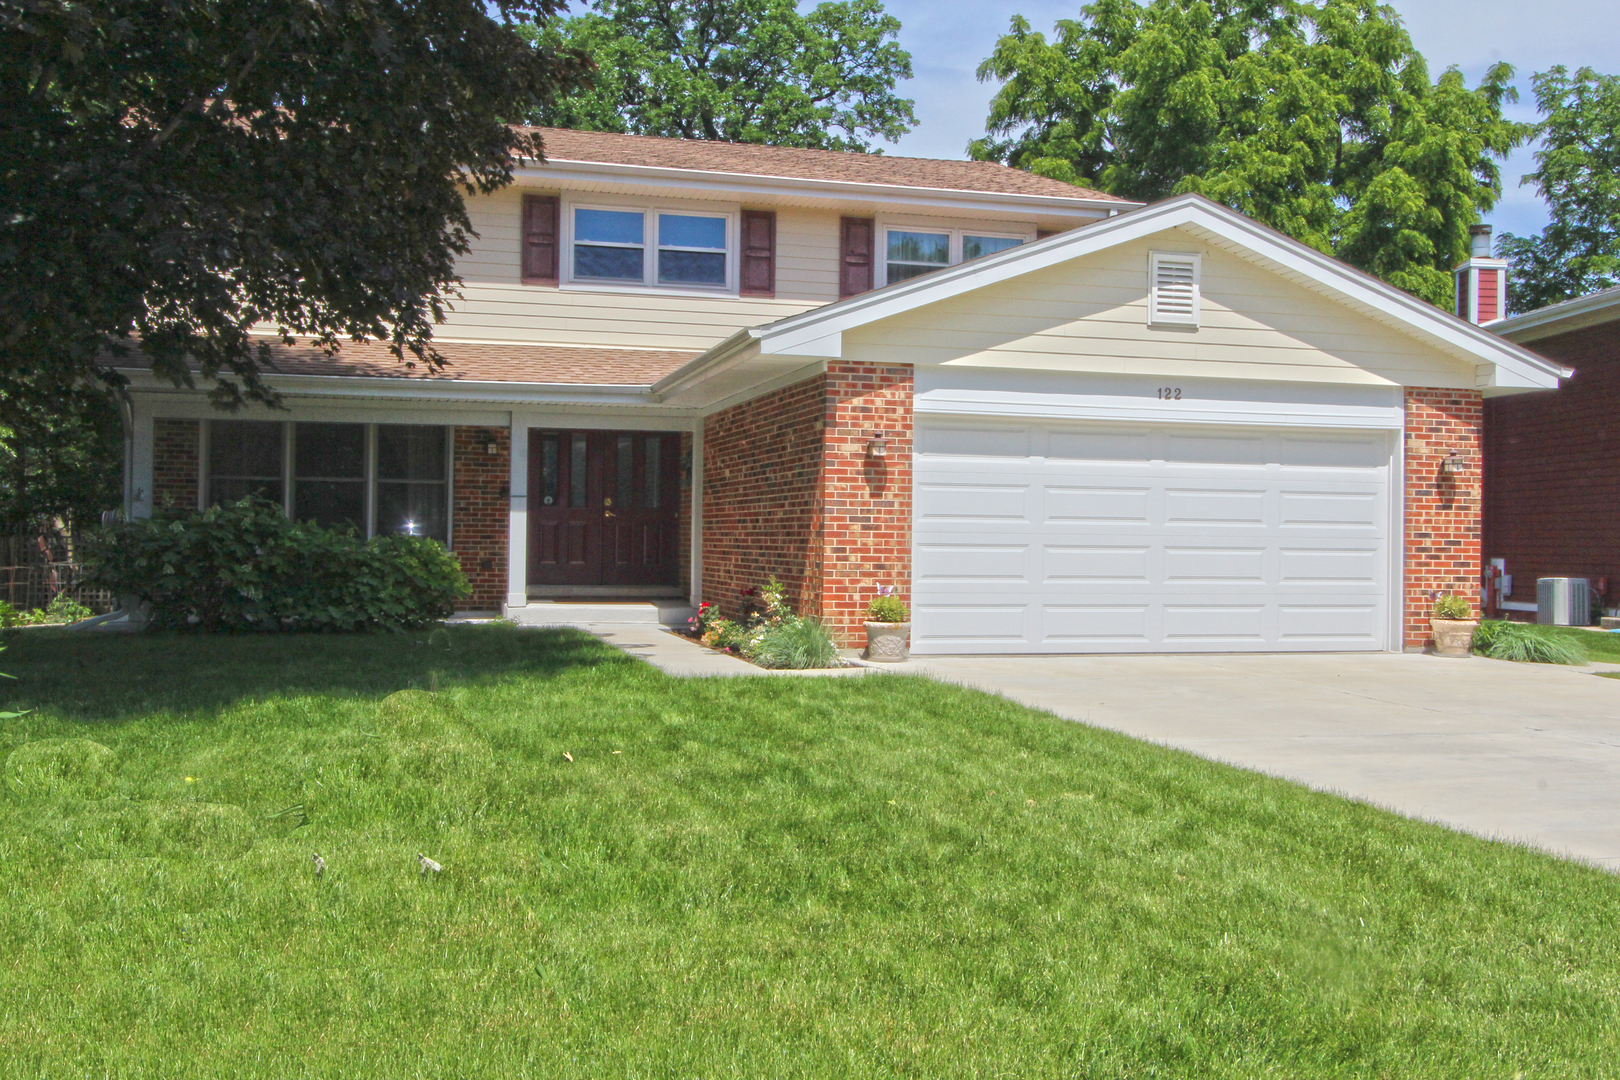 122 Kincaid Drive, Lake Zurich in Lake County, IL 60047 Home for Sale